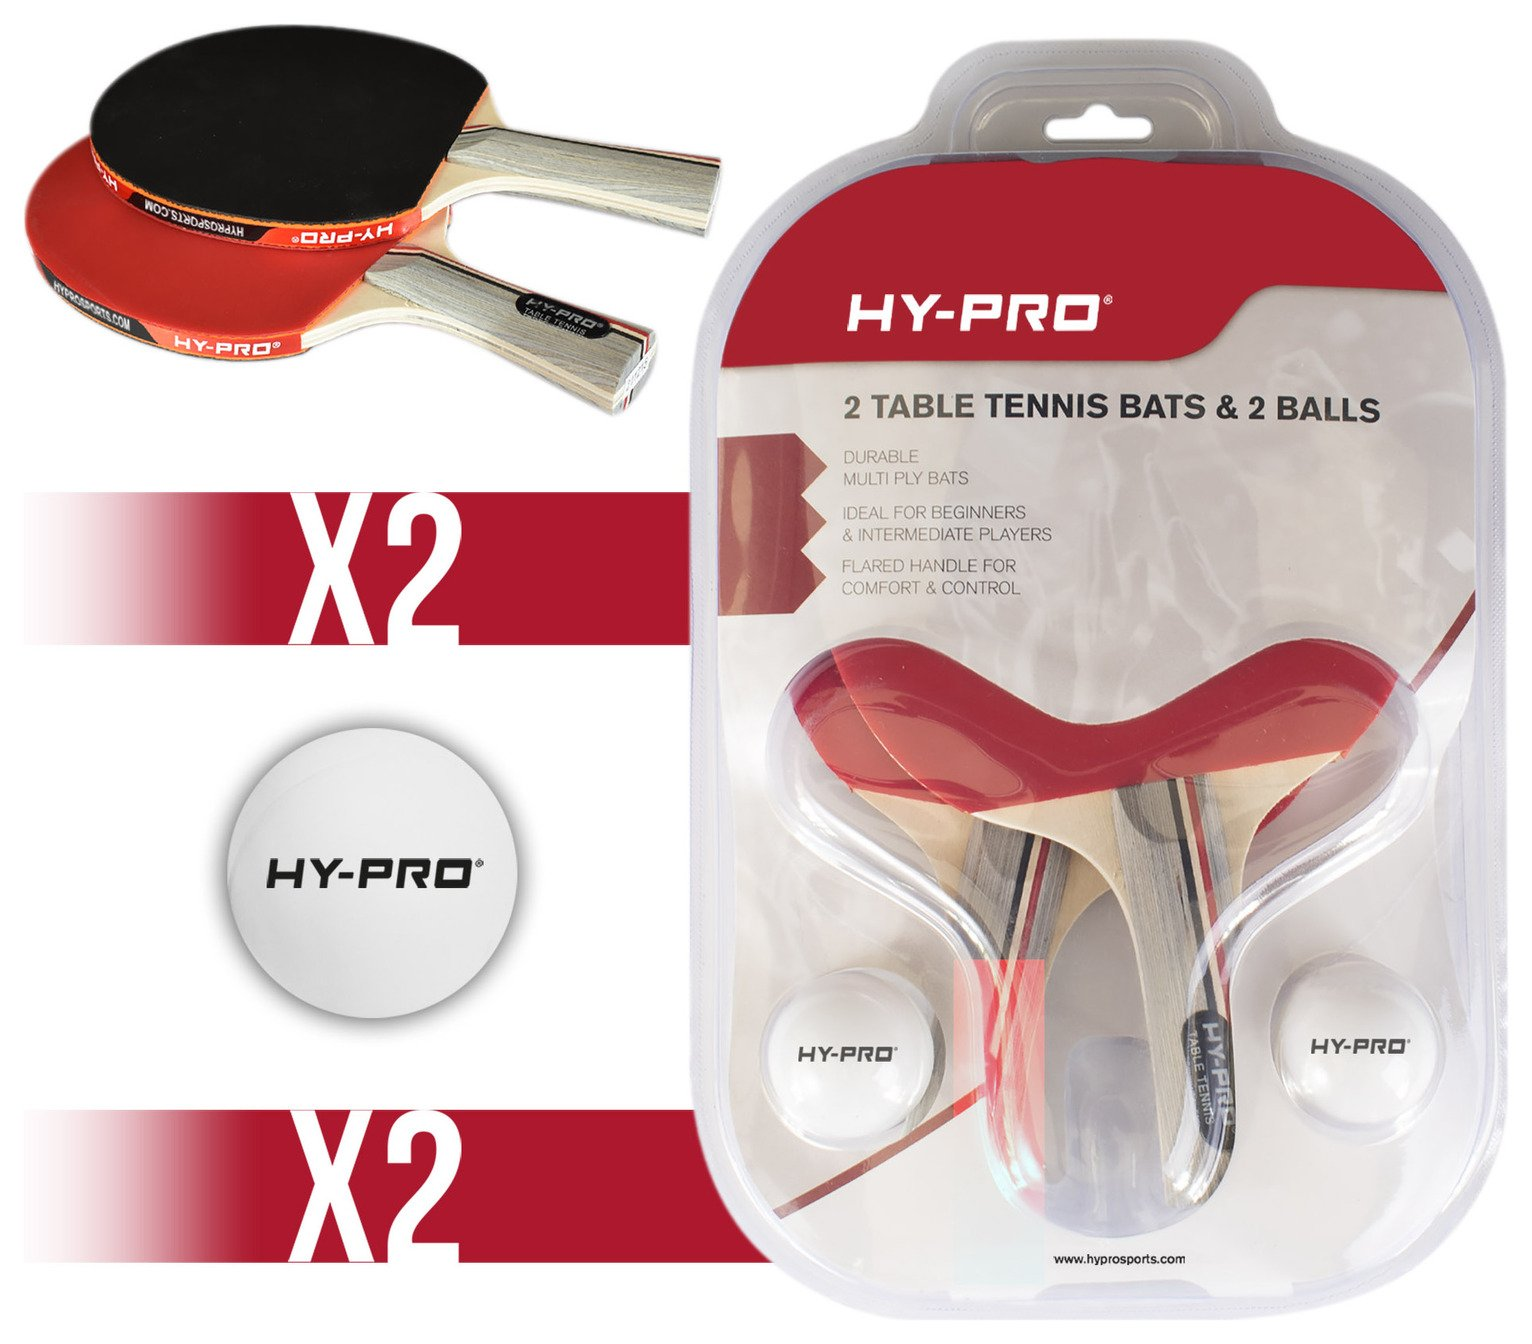 Hy-Pro 2 Bats and 2 Balls Table Tennis Set